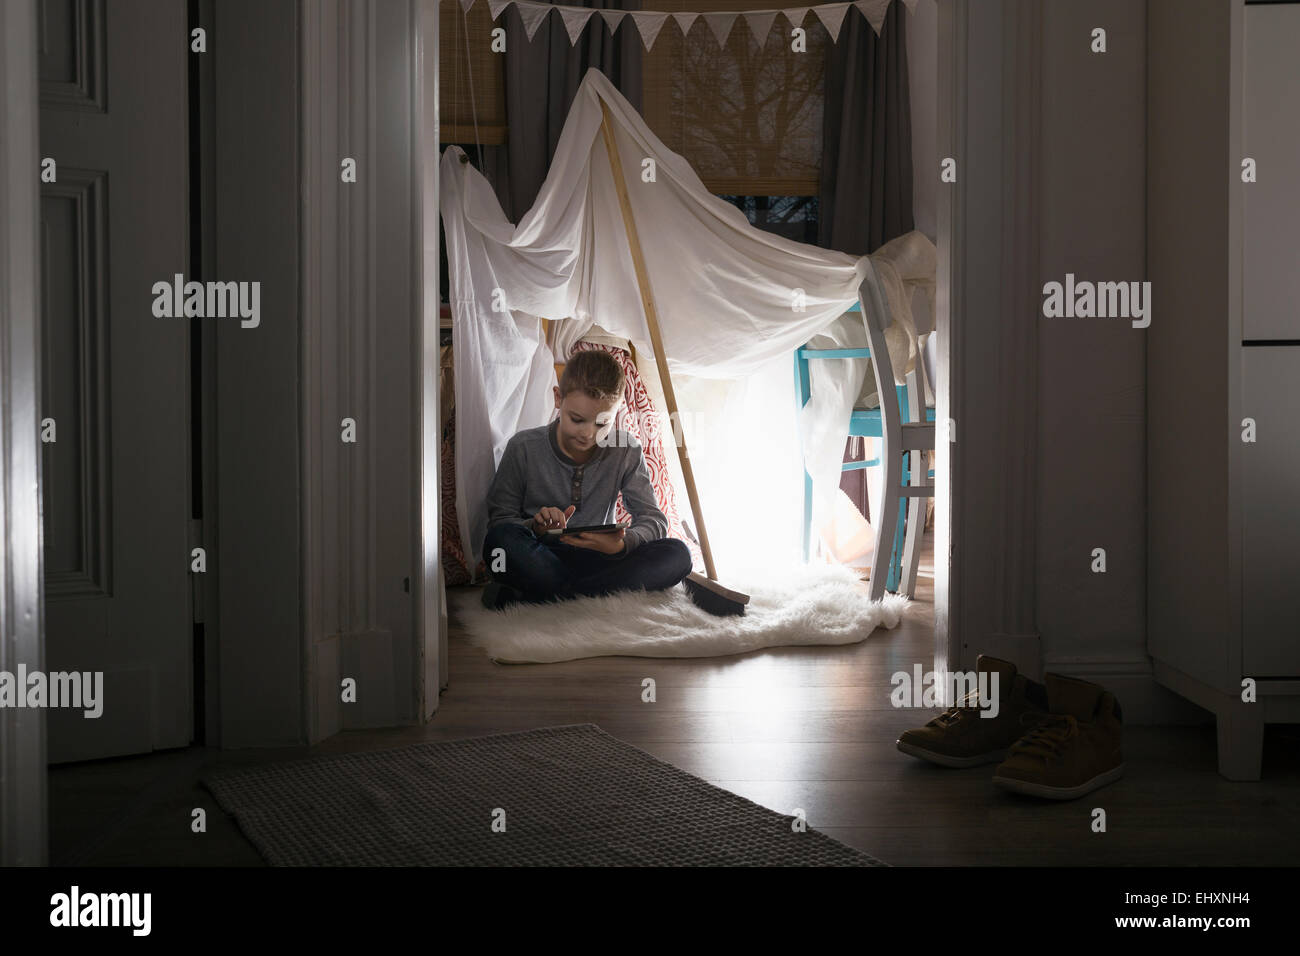 Boy sitting in self-made tent at home in the evening using digital tablet & Boy sitting in self-made tent at home in the evening using digital ...